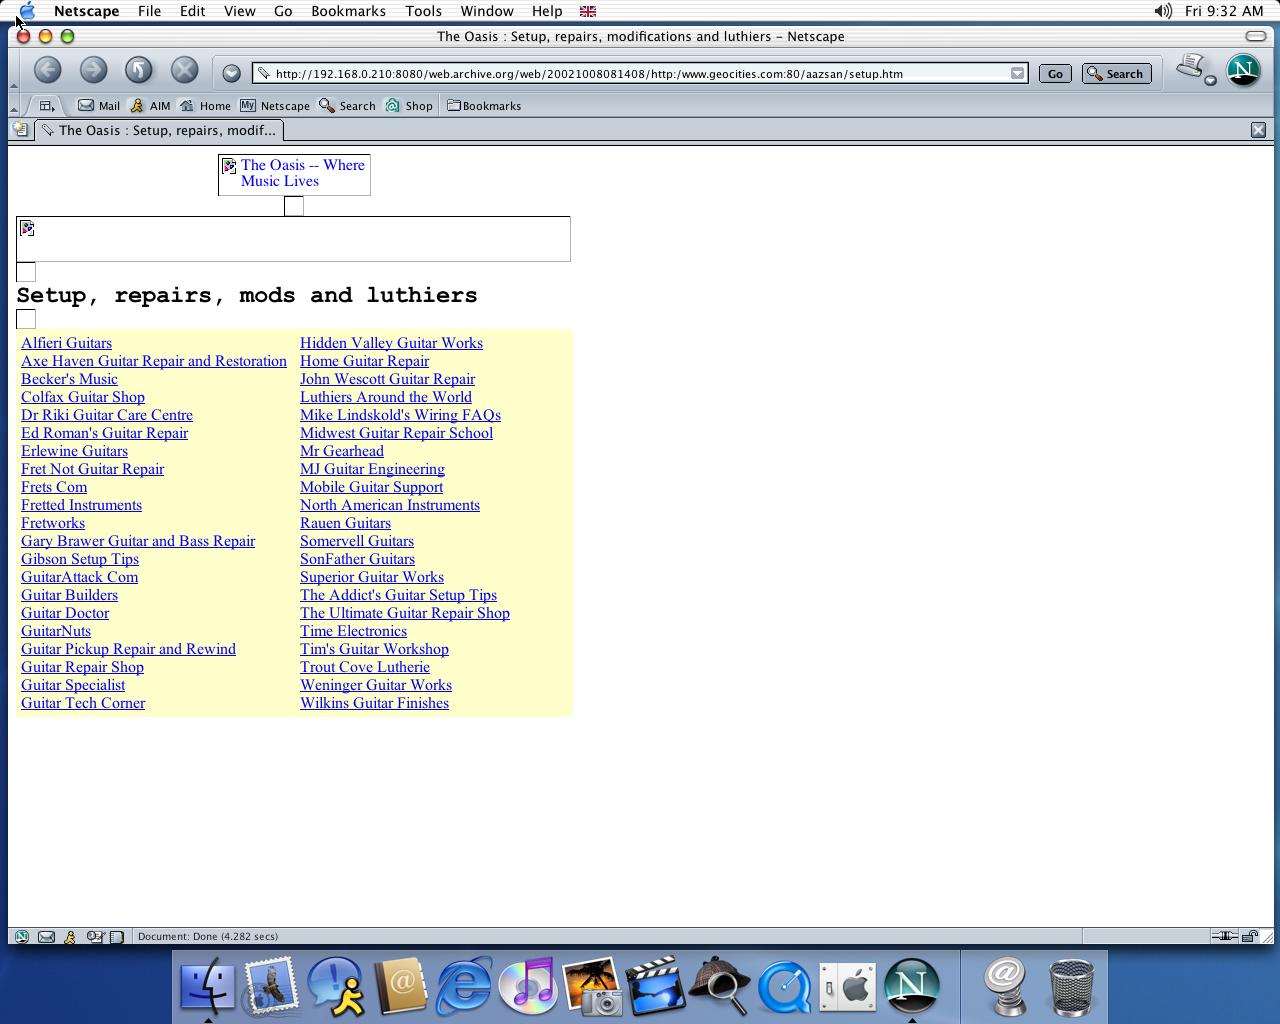 OS X 10.2 PPC with Netscape 7.0 displaying a page from GeoCities archived at October 08, 2002 at 08:14:08